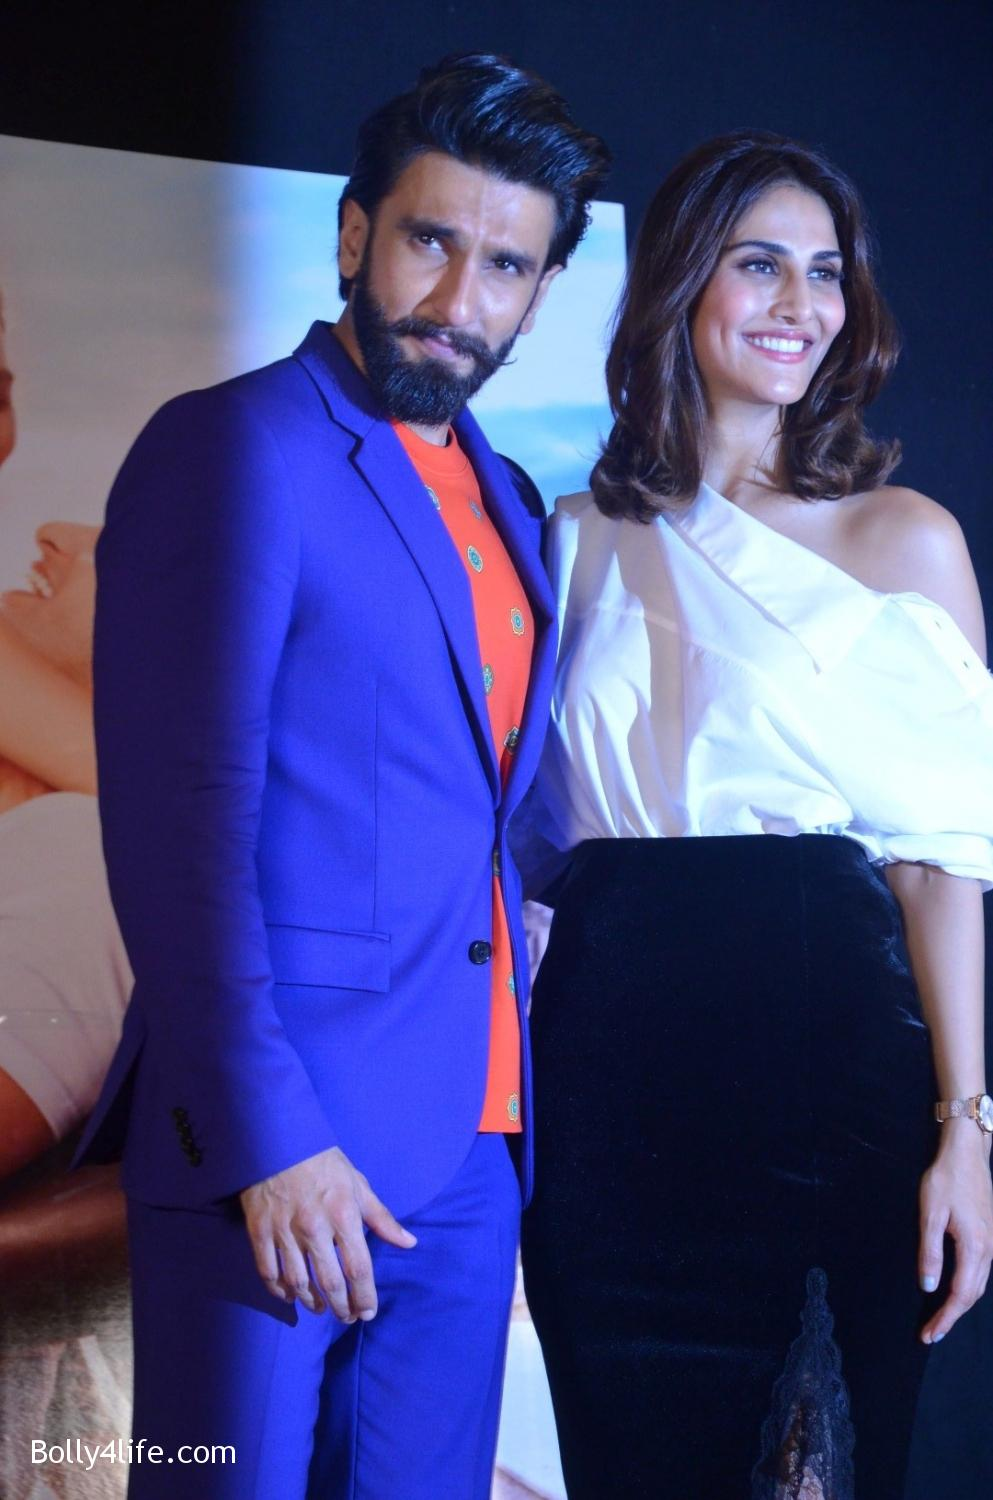 Ranveer-Singh-and-Vaani-Kapoor-during-the-song-launch-You-And-Me-from-film-Befikre-4.jpg